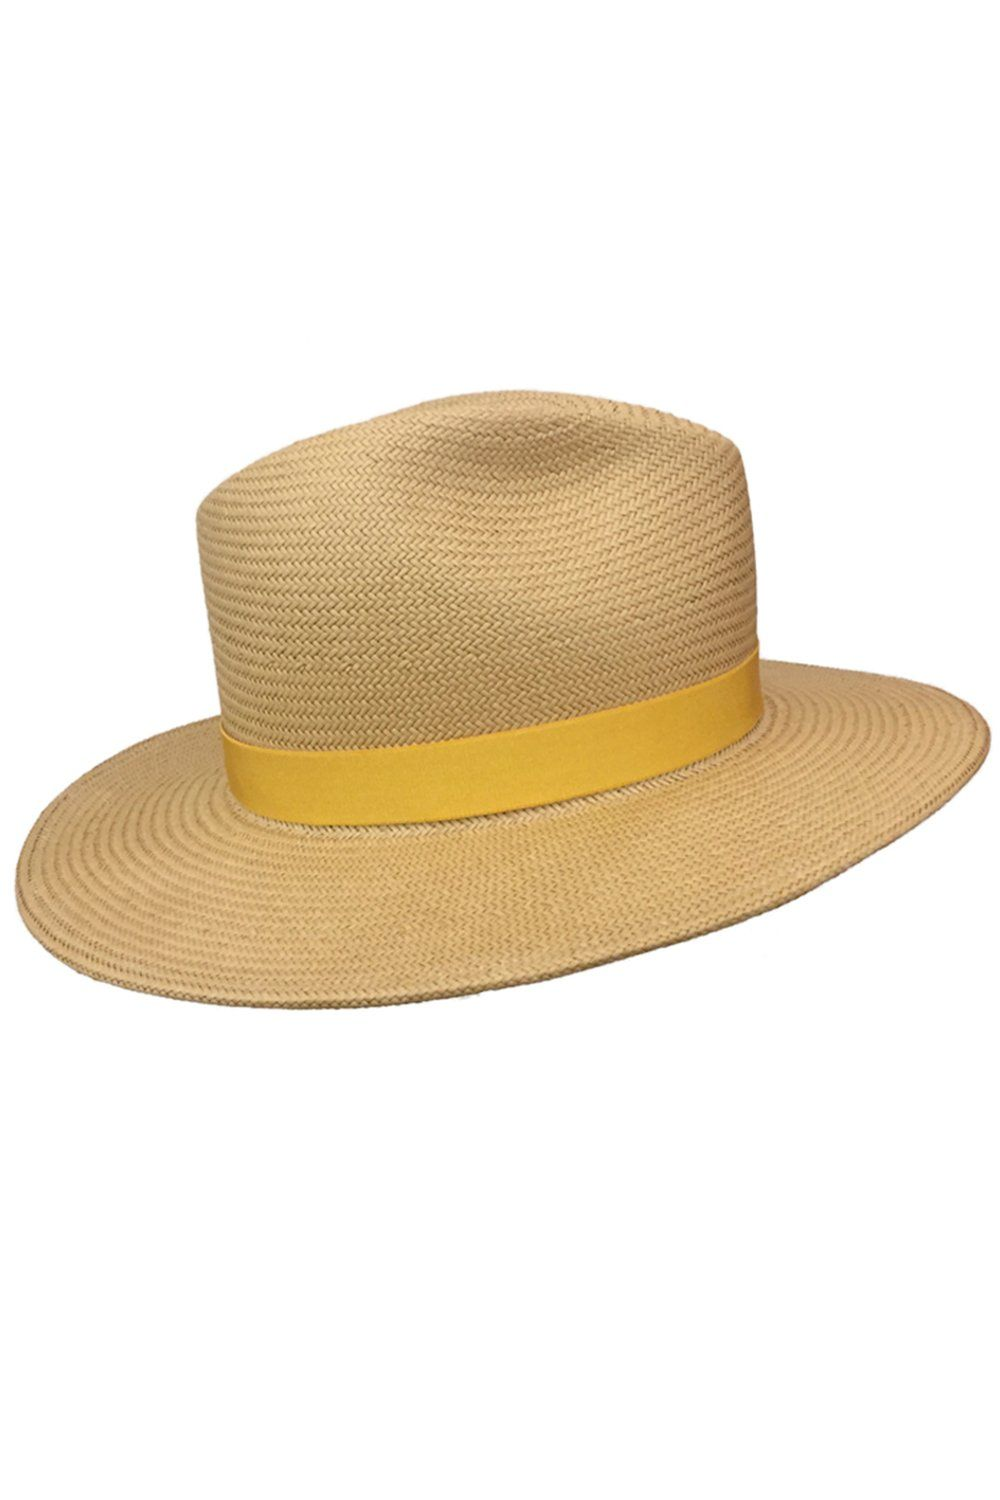 6c3dff99f1e602 The Nomad is the perfect classic fedora that is made for light travel.  Fold, Roll, and Go! Pack this hat by gently pushing the crown out and  smoothing down ...